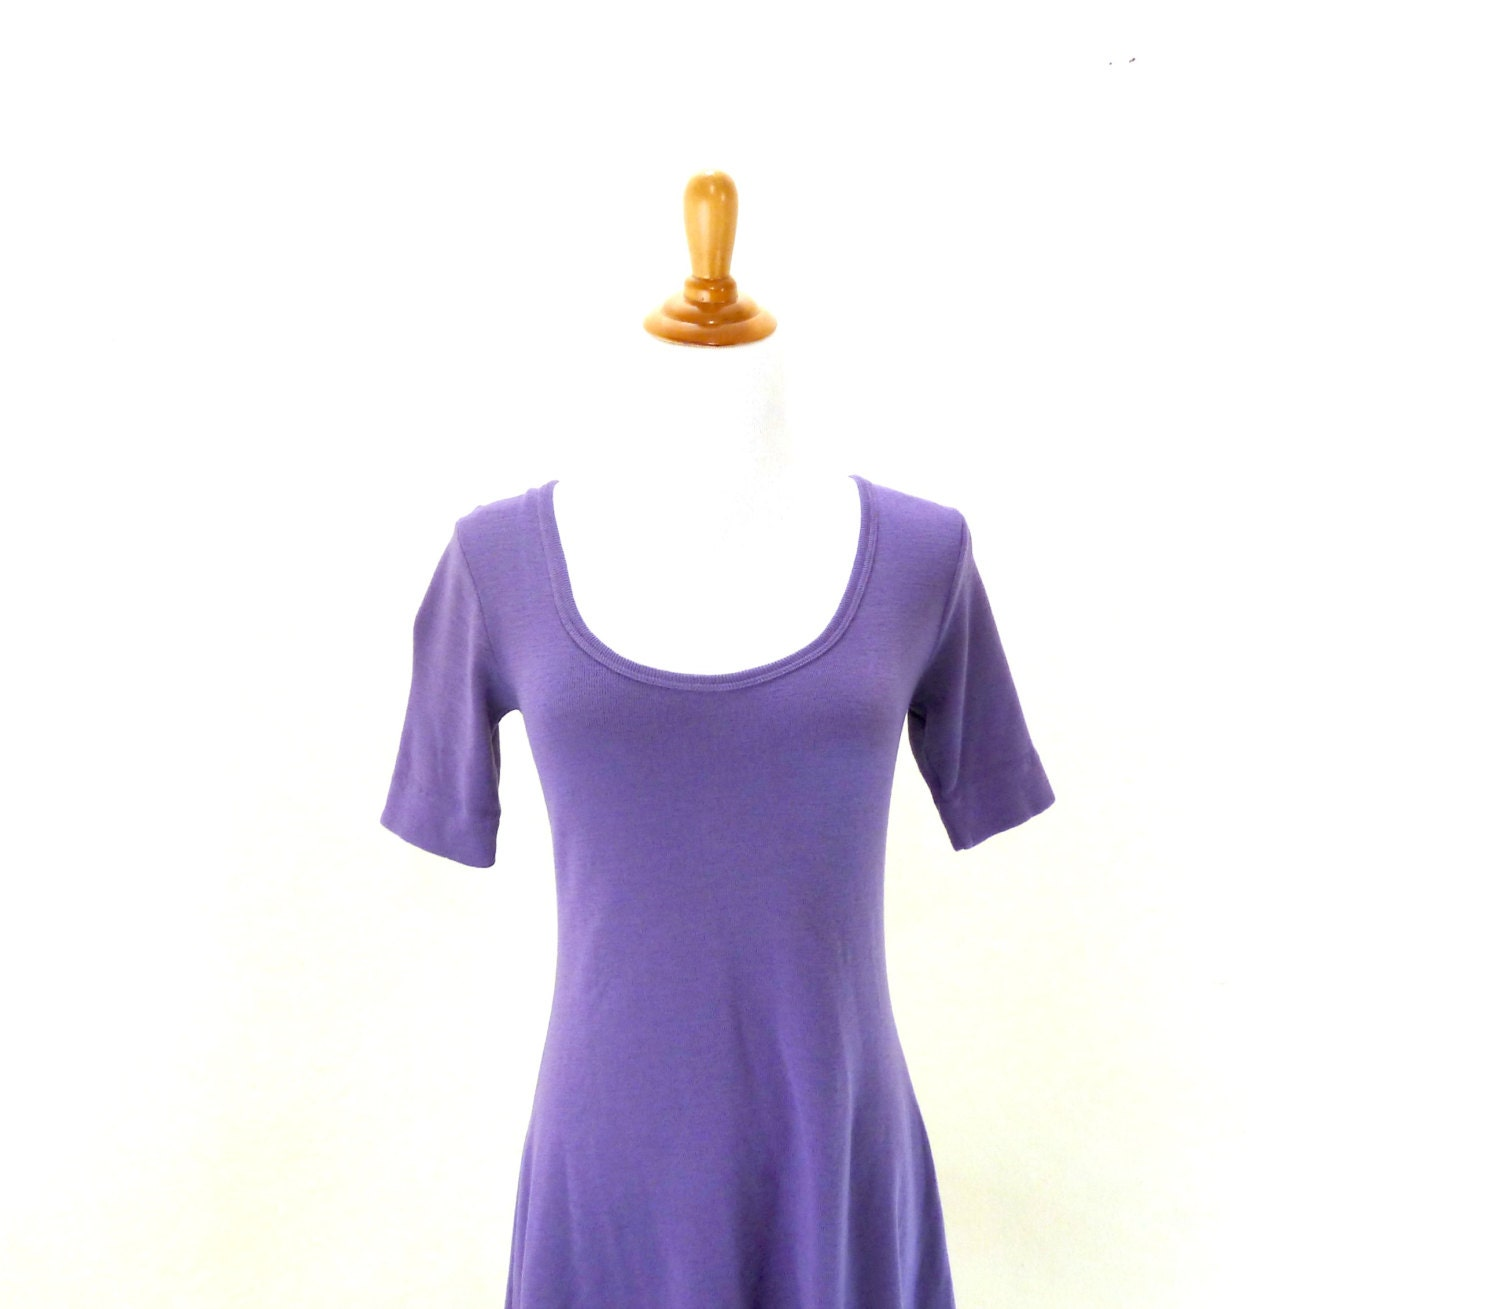 Vintage Purple Sweater Dress / Scoop Neck Dress / Knit Wool Dress S M - VintageEdition